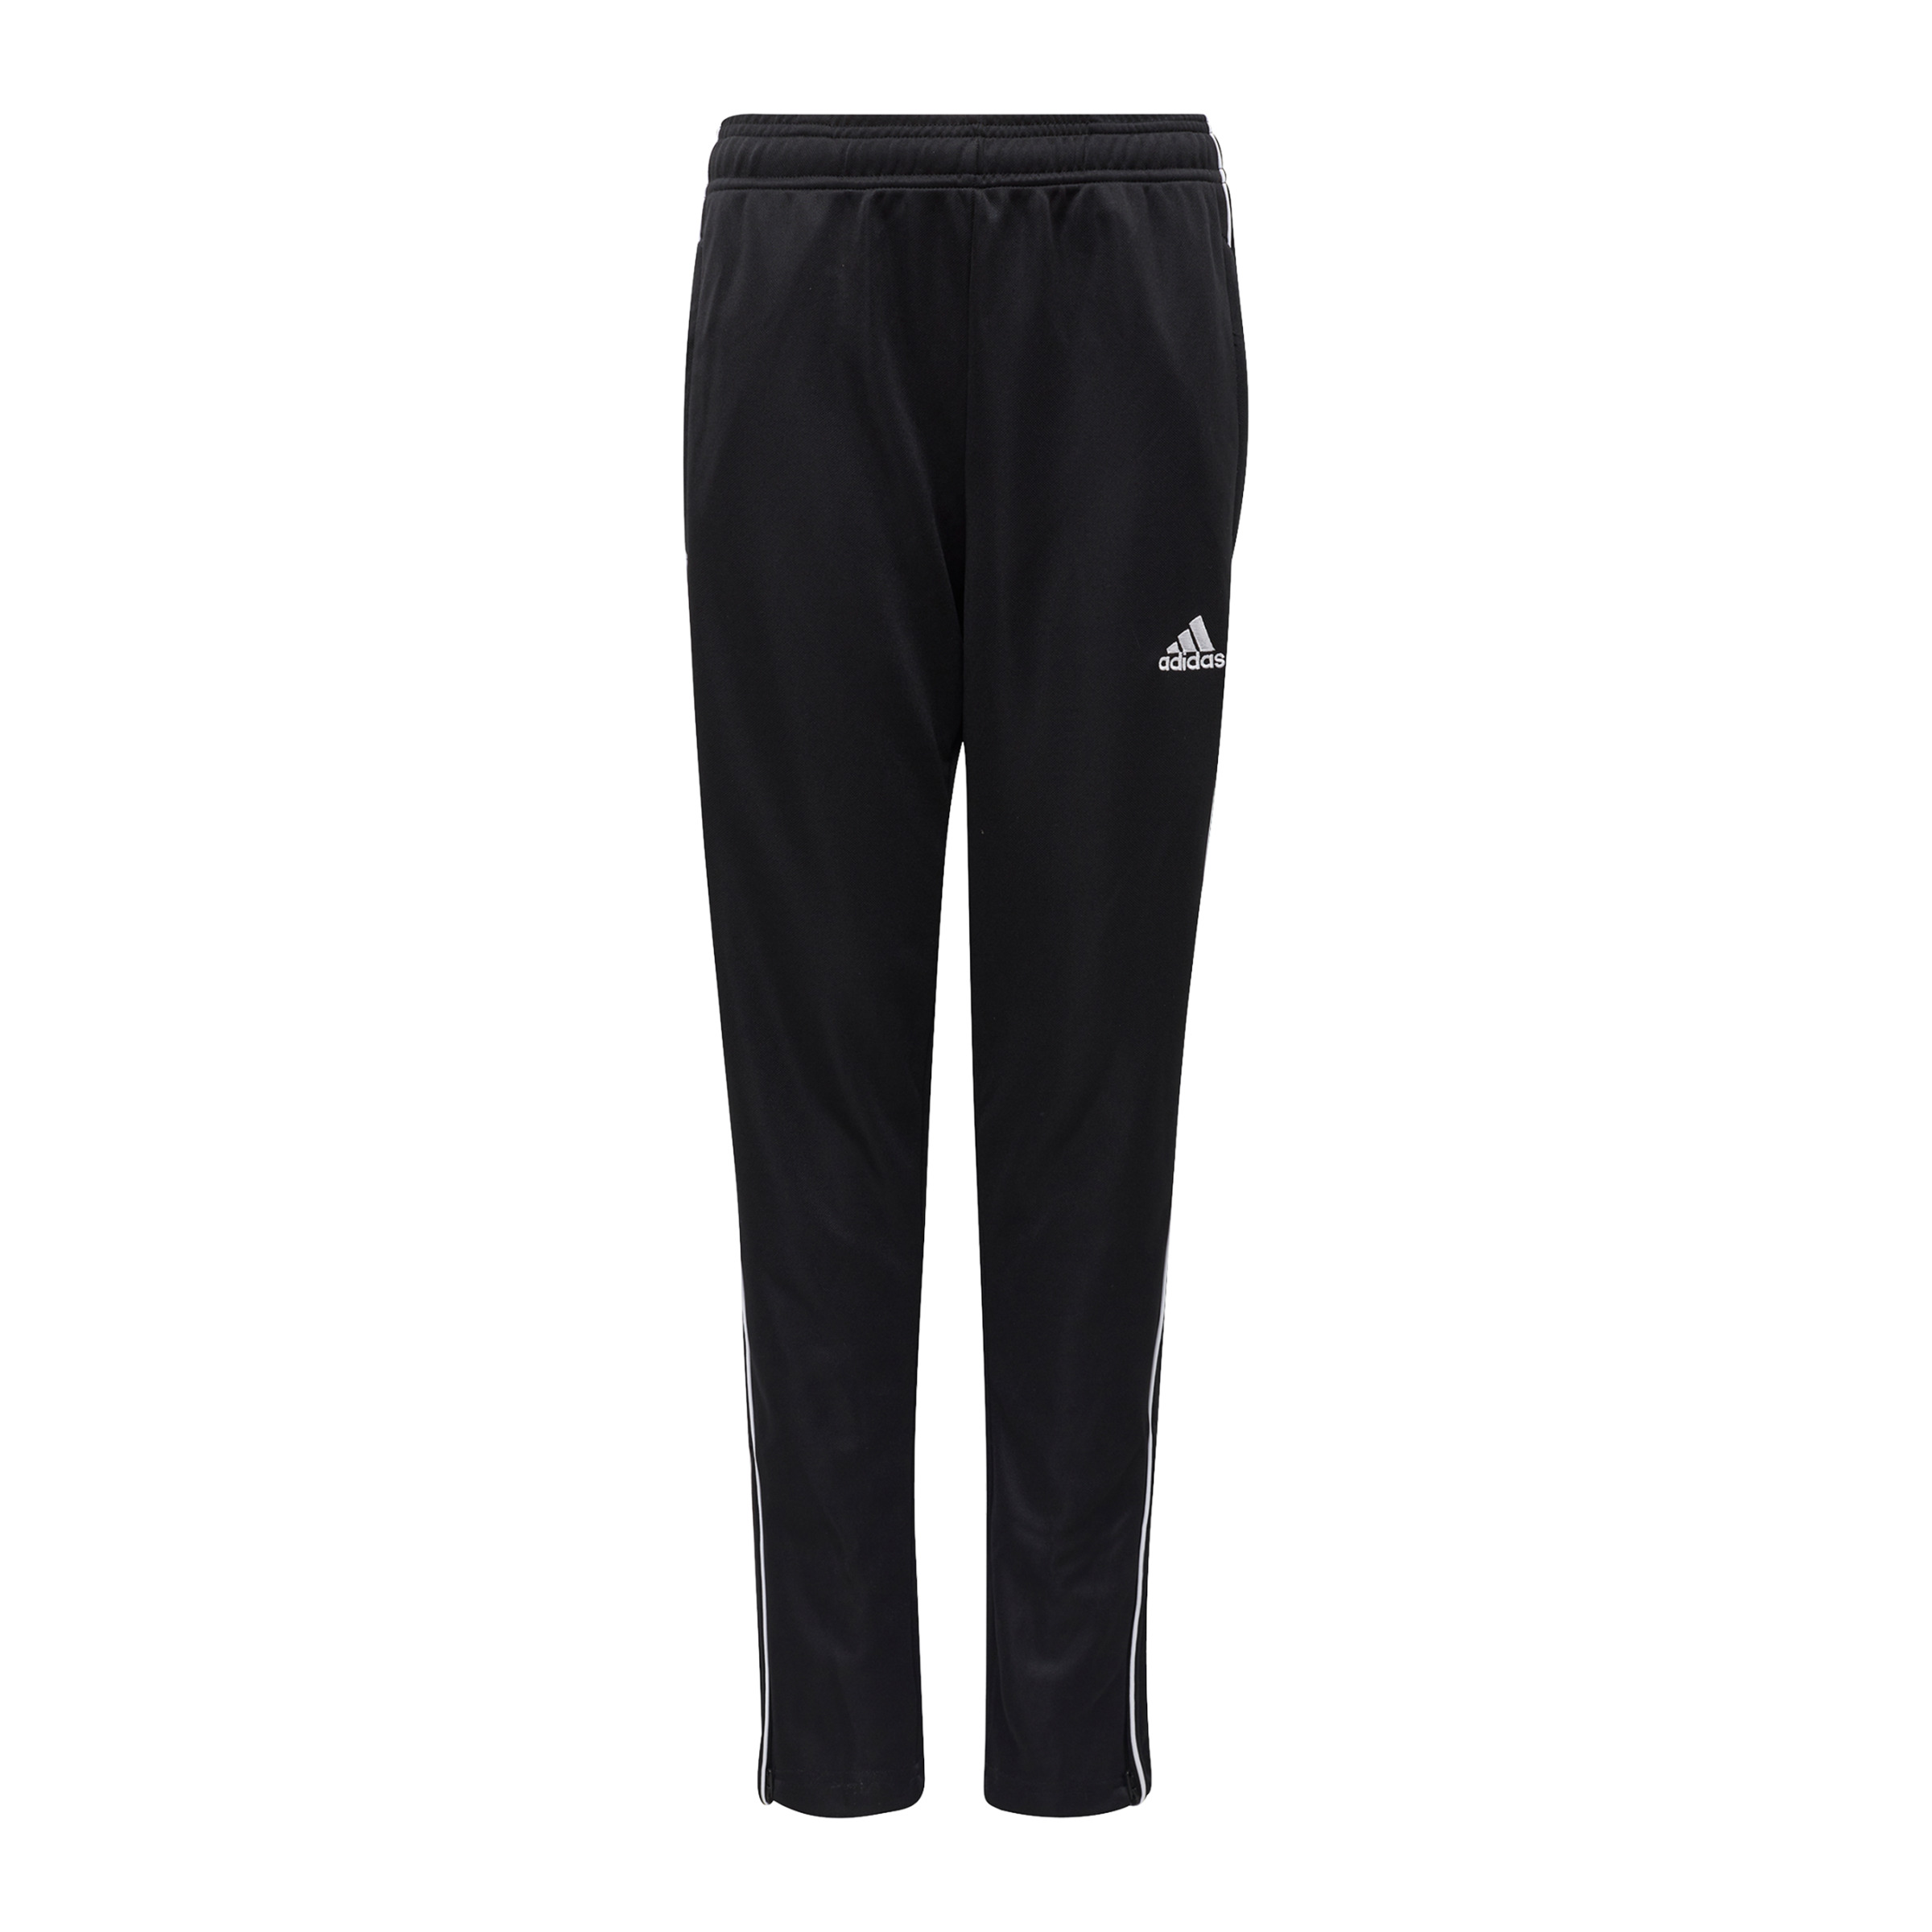 adidas-Core-18-Training-Pant-Kids-Schwarz-Weiss Indexbild 1